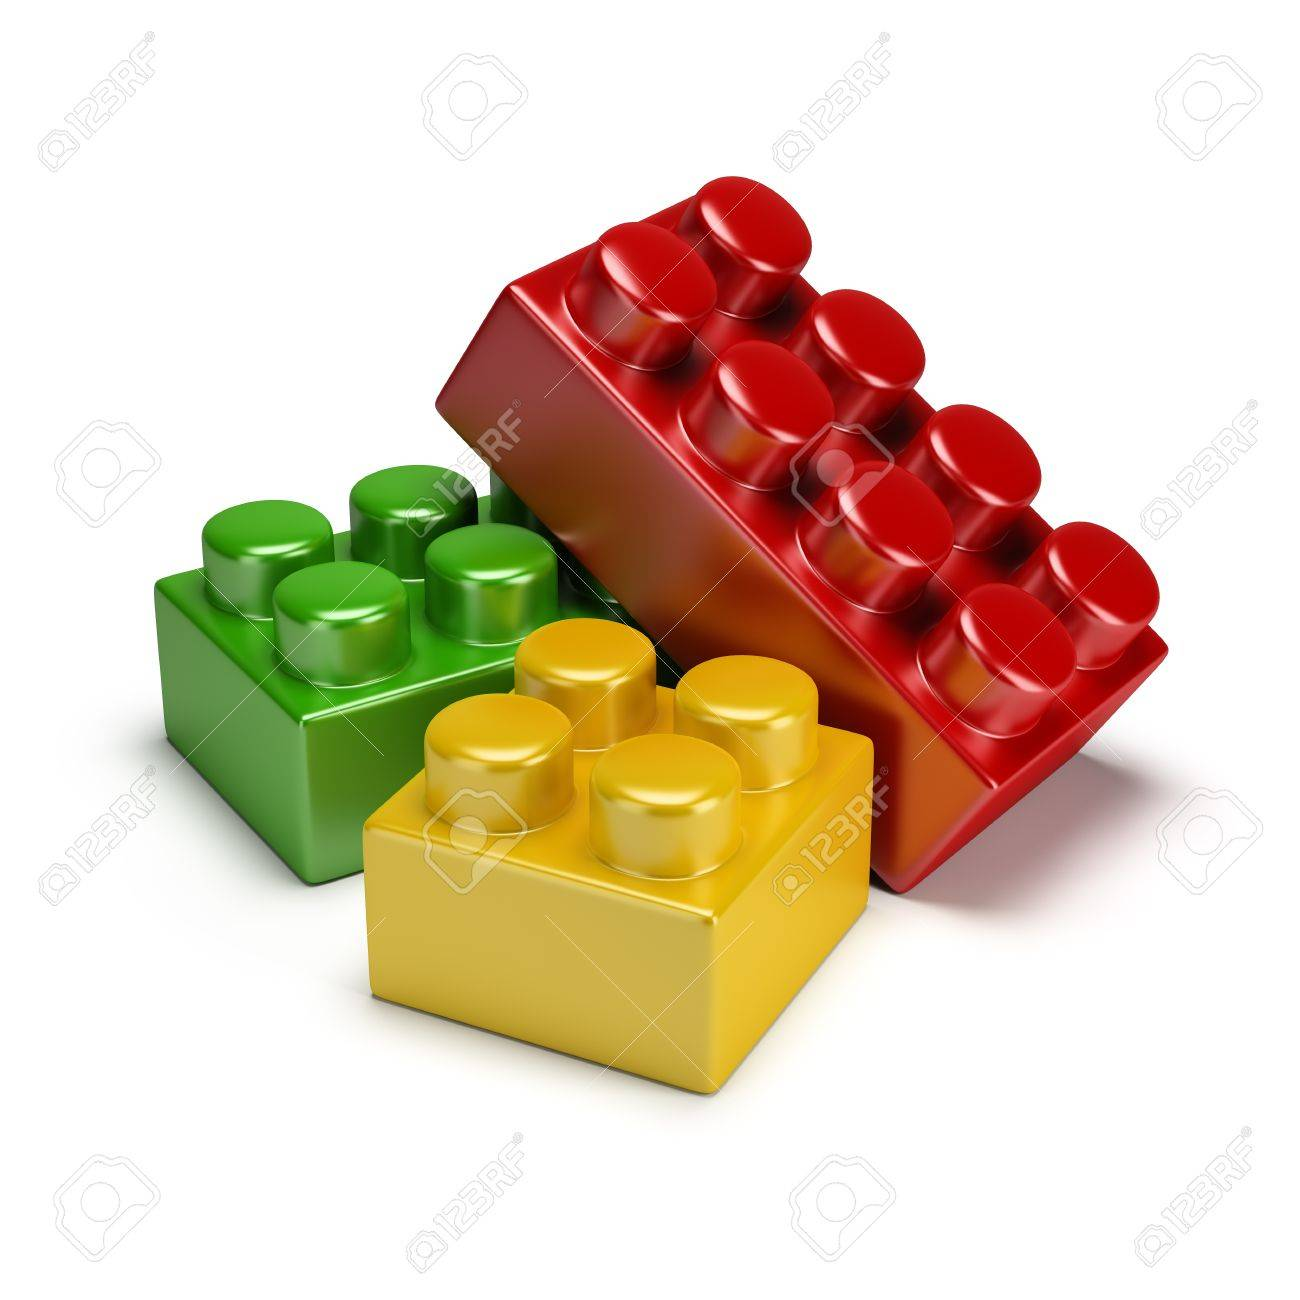 colorful plastic toy blocks. 3d image. Isolated white background. Stock Photo - 14573940